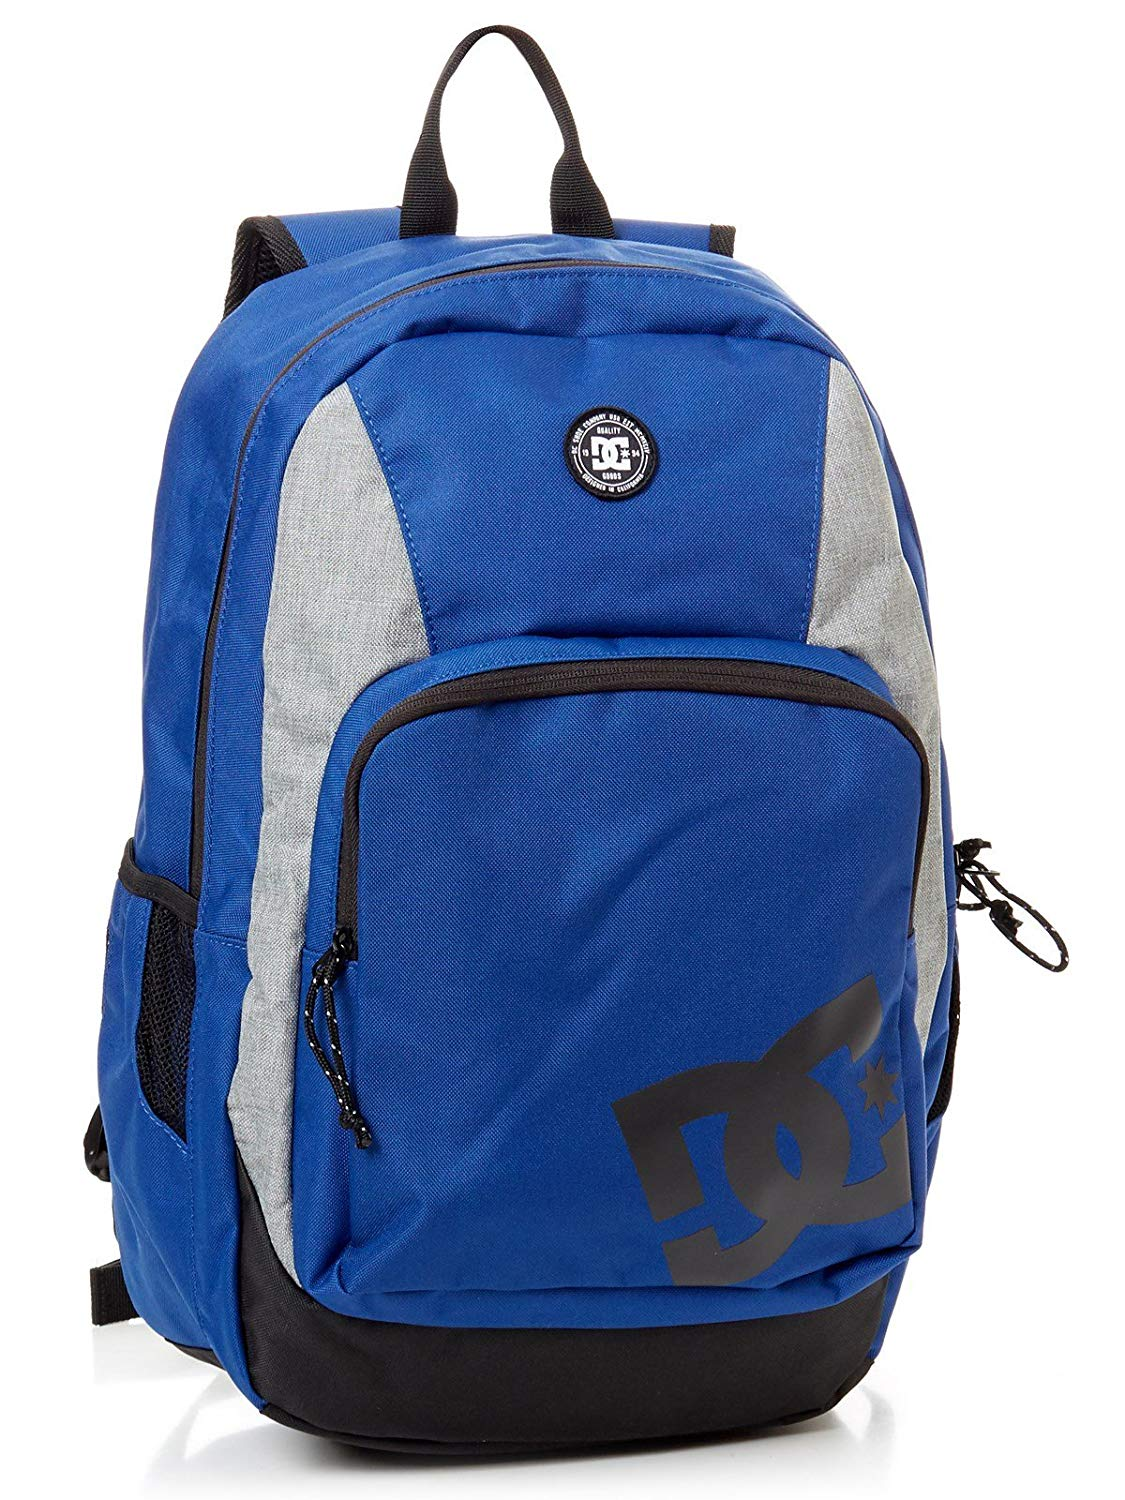 687c934b14 Get Quotations · DC The Locker Backpack in Sodalite Blue